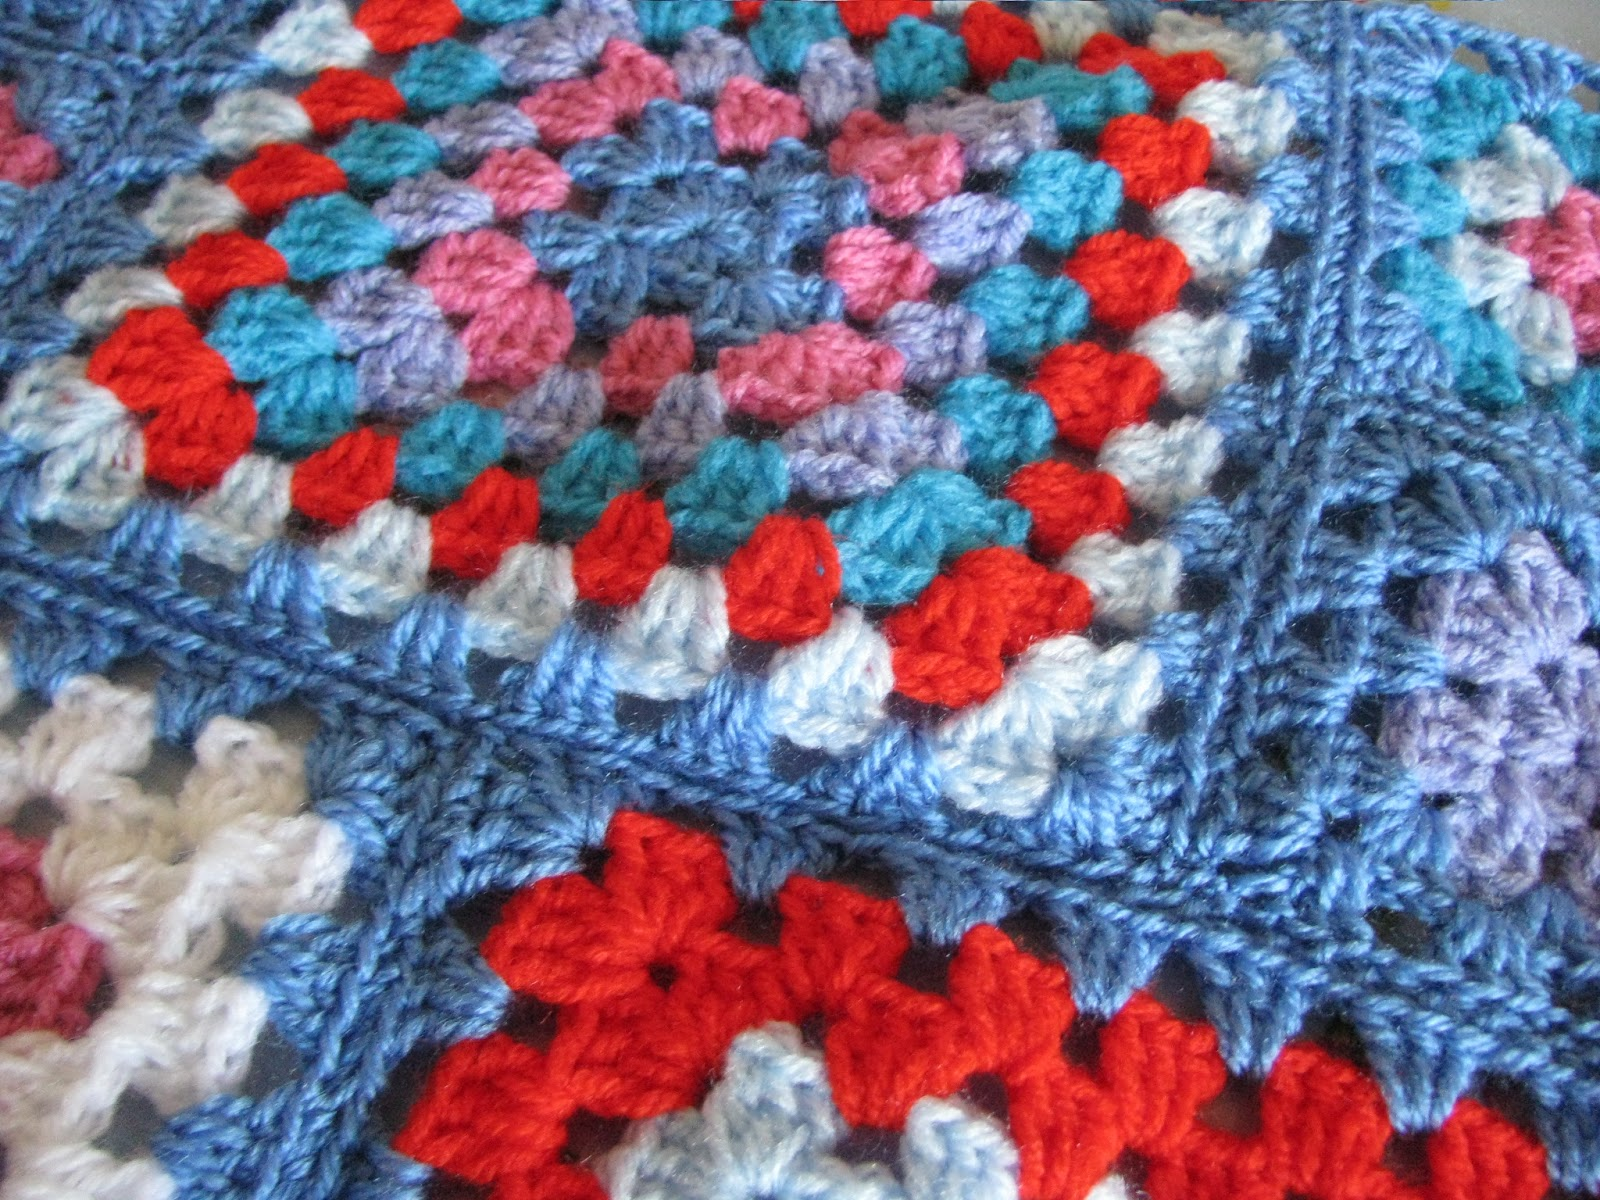 Crochet Granny Stitch : Shortbread & Ginger: Bright Crochet Granny Squares